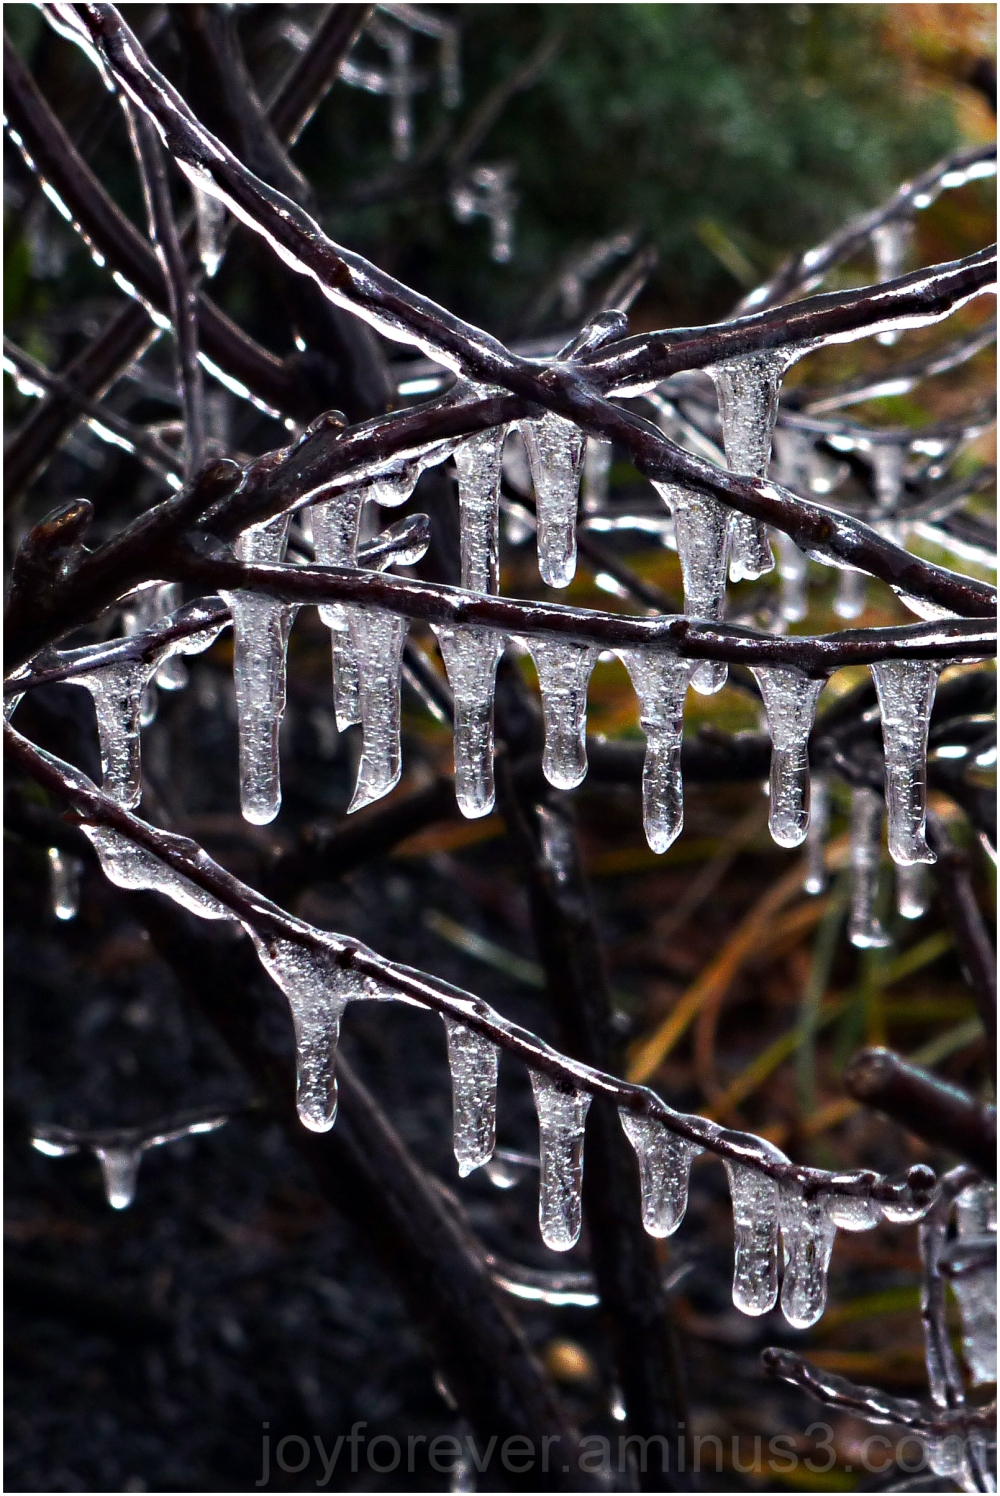 ice icicle water plant twigs branches winter